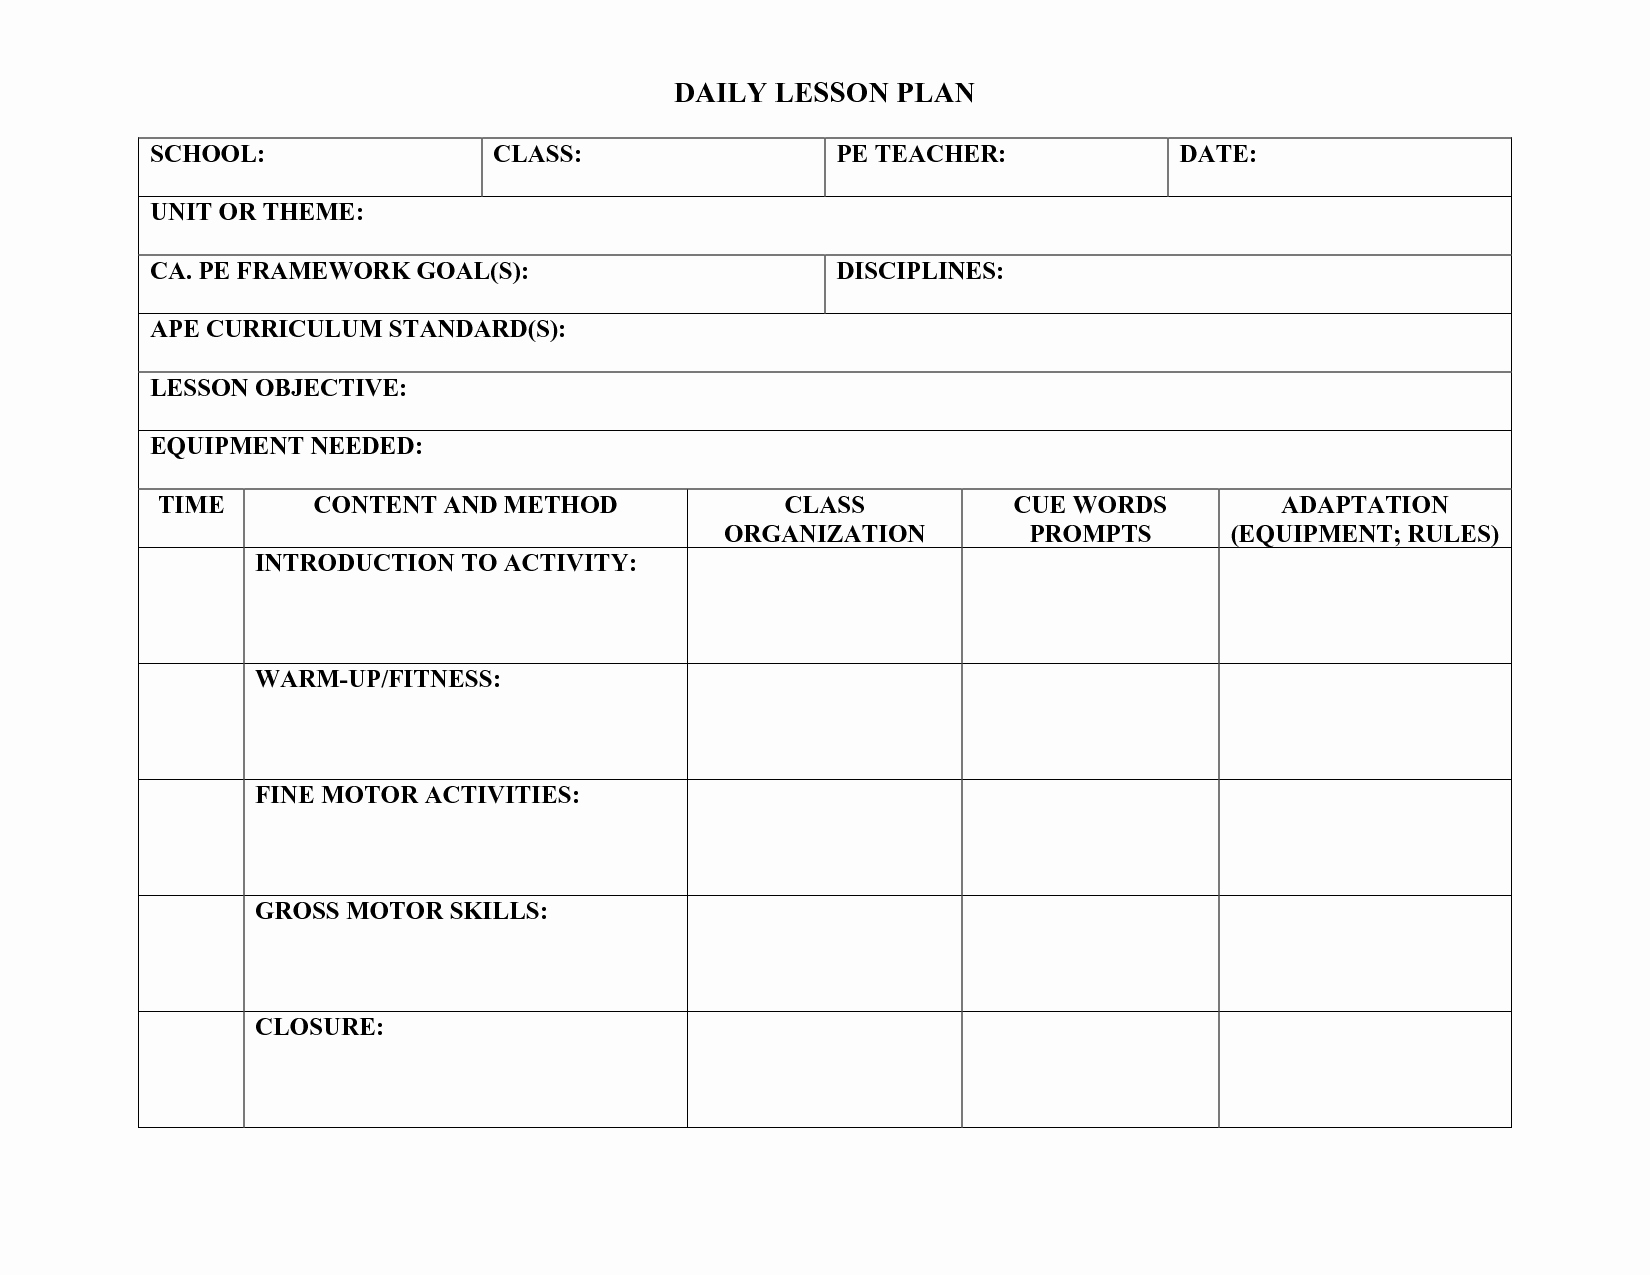 Elementary Weekly Lesson Plan Template Luxury Pe Lesson Plan Template Education